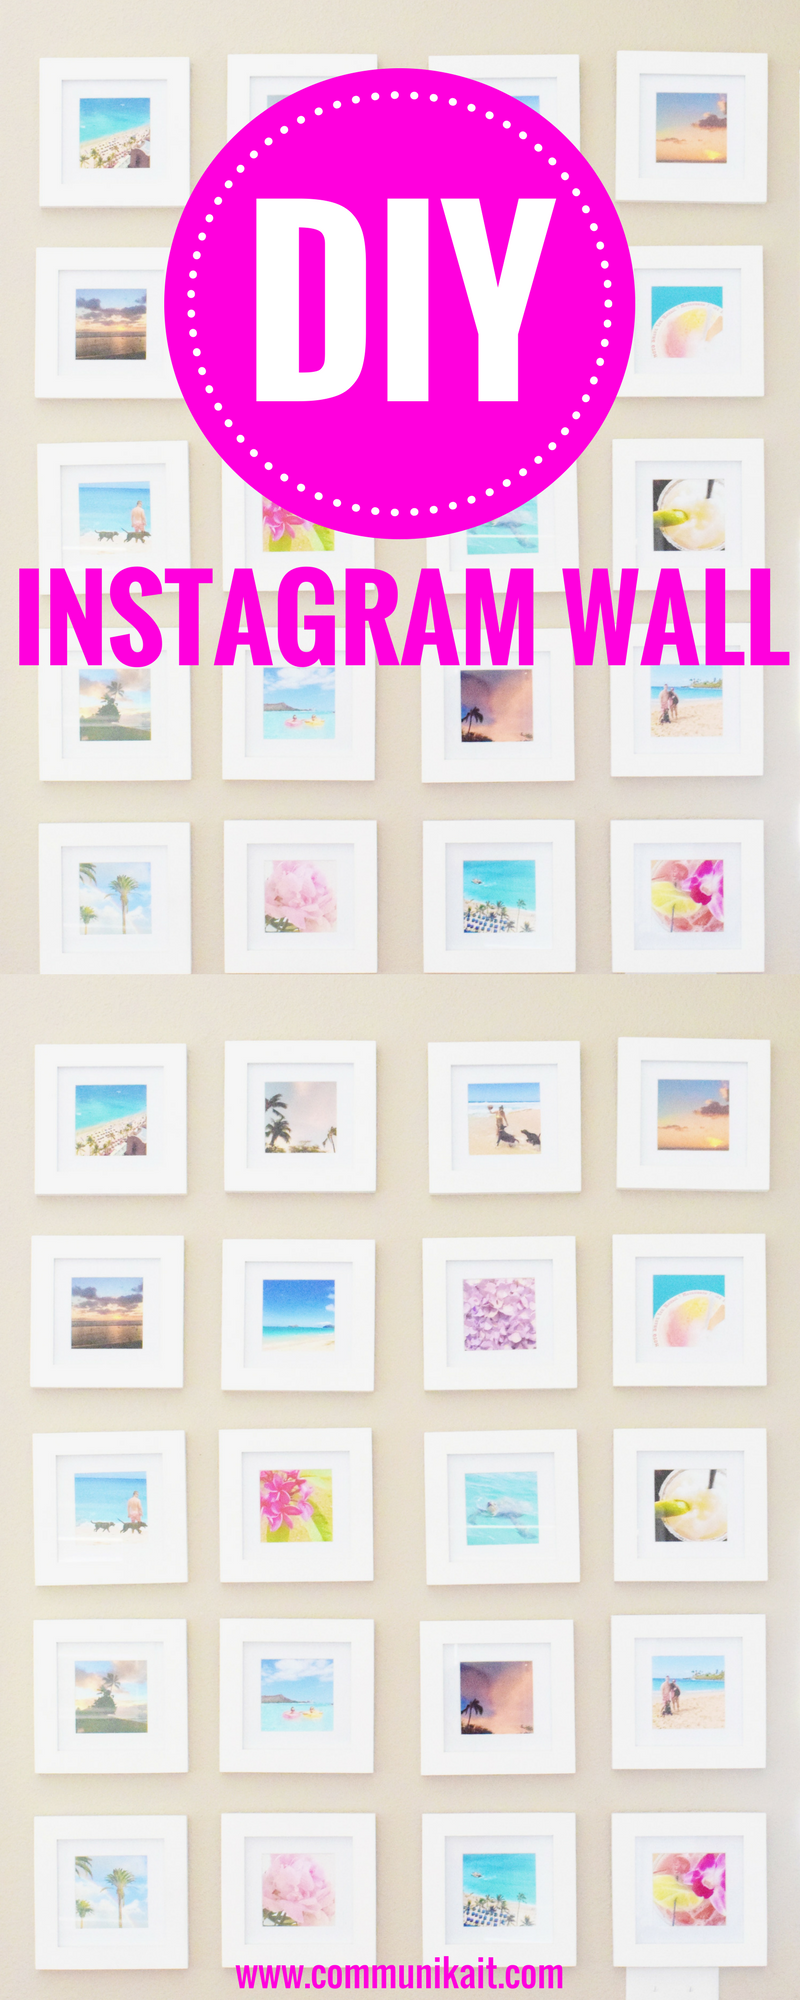 DIY Instagram Wall - a step-by-step guide! - Gallery Wall Ideas - Instagram Wall - How To Hang A Gallery Wall - Gallery Wall Layout - Living Room Gallery Wall - DIY Home Project - Communikait by Kait Hanson